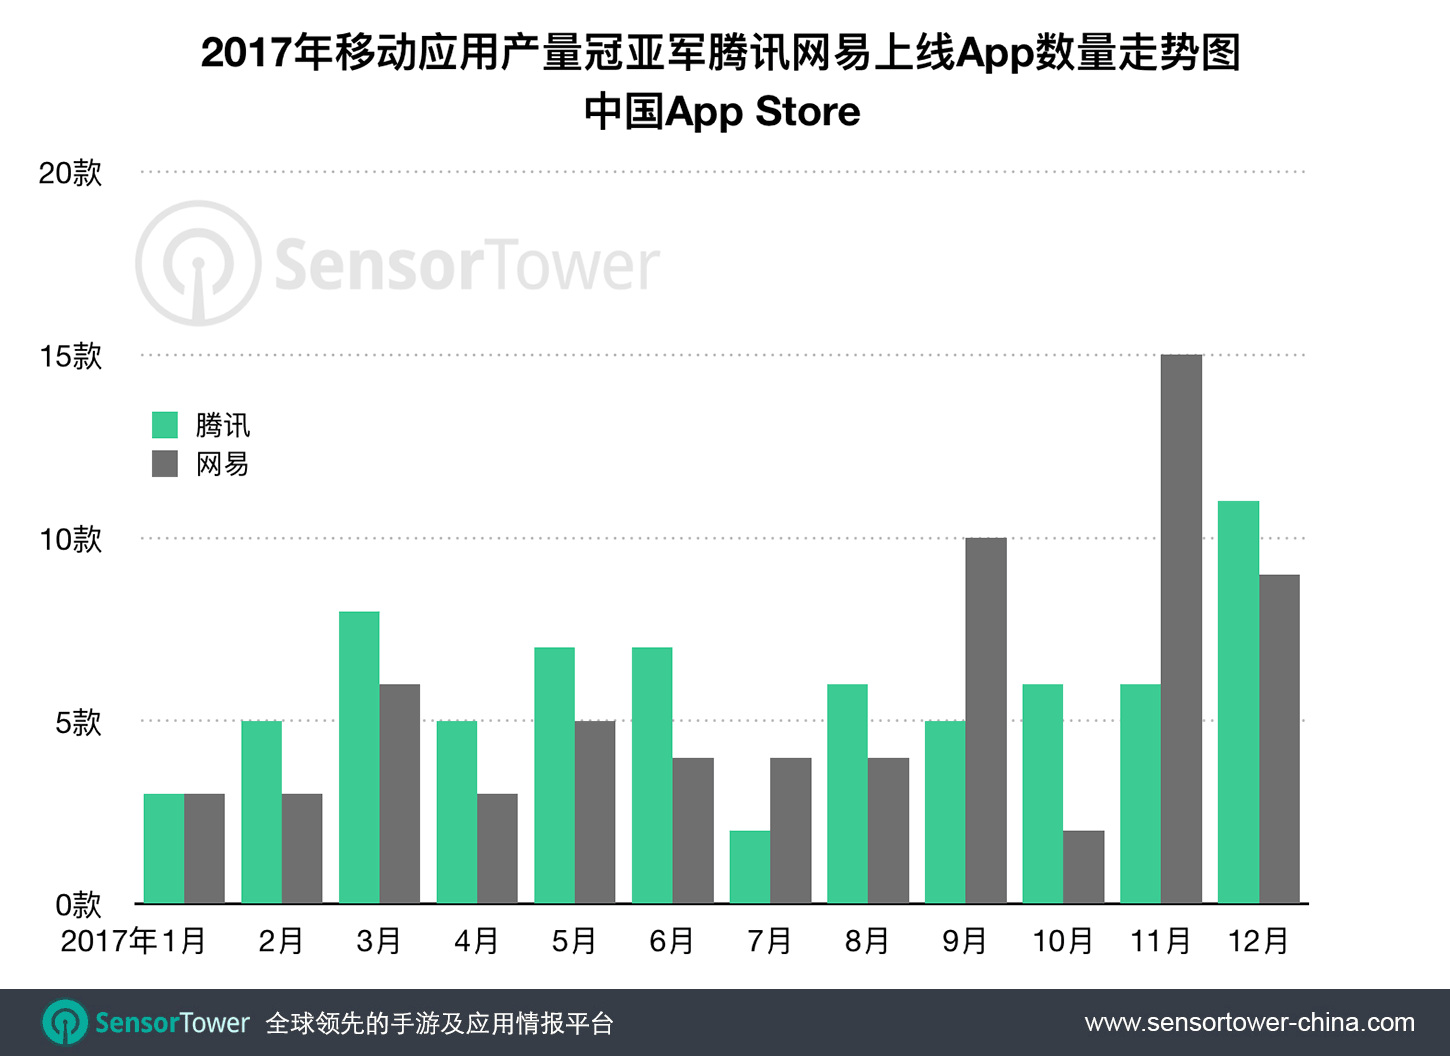 Tencent NetEase Number of Apps Released Per Month 2017  - tencent netease number of apps released per month 2017 - 腾讯为2017年中国iOS市场最多产的App发行商,共发行71款应用,网易紧随其后